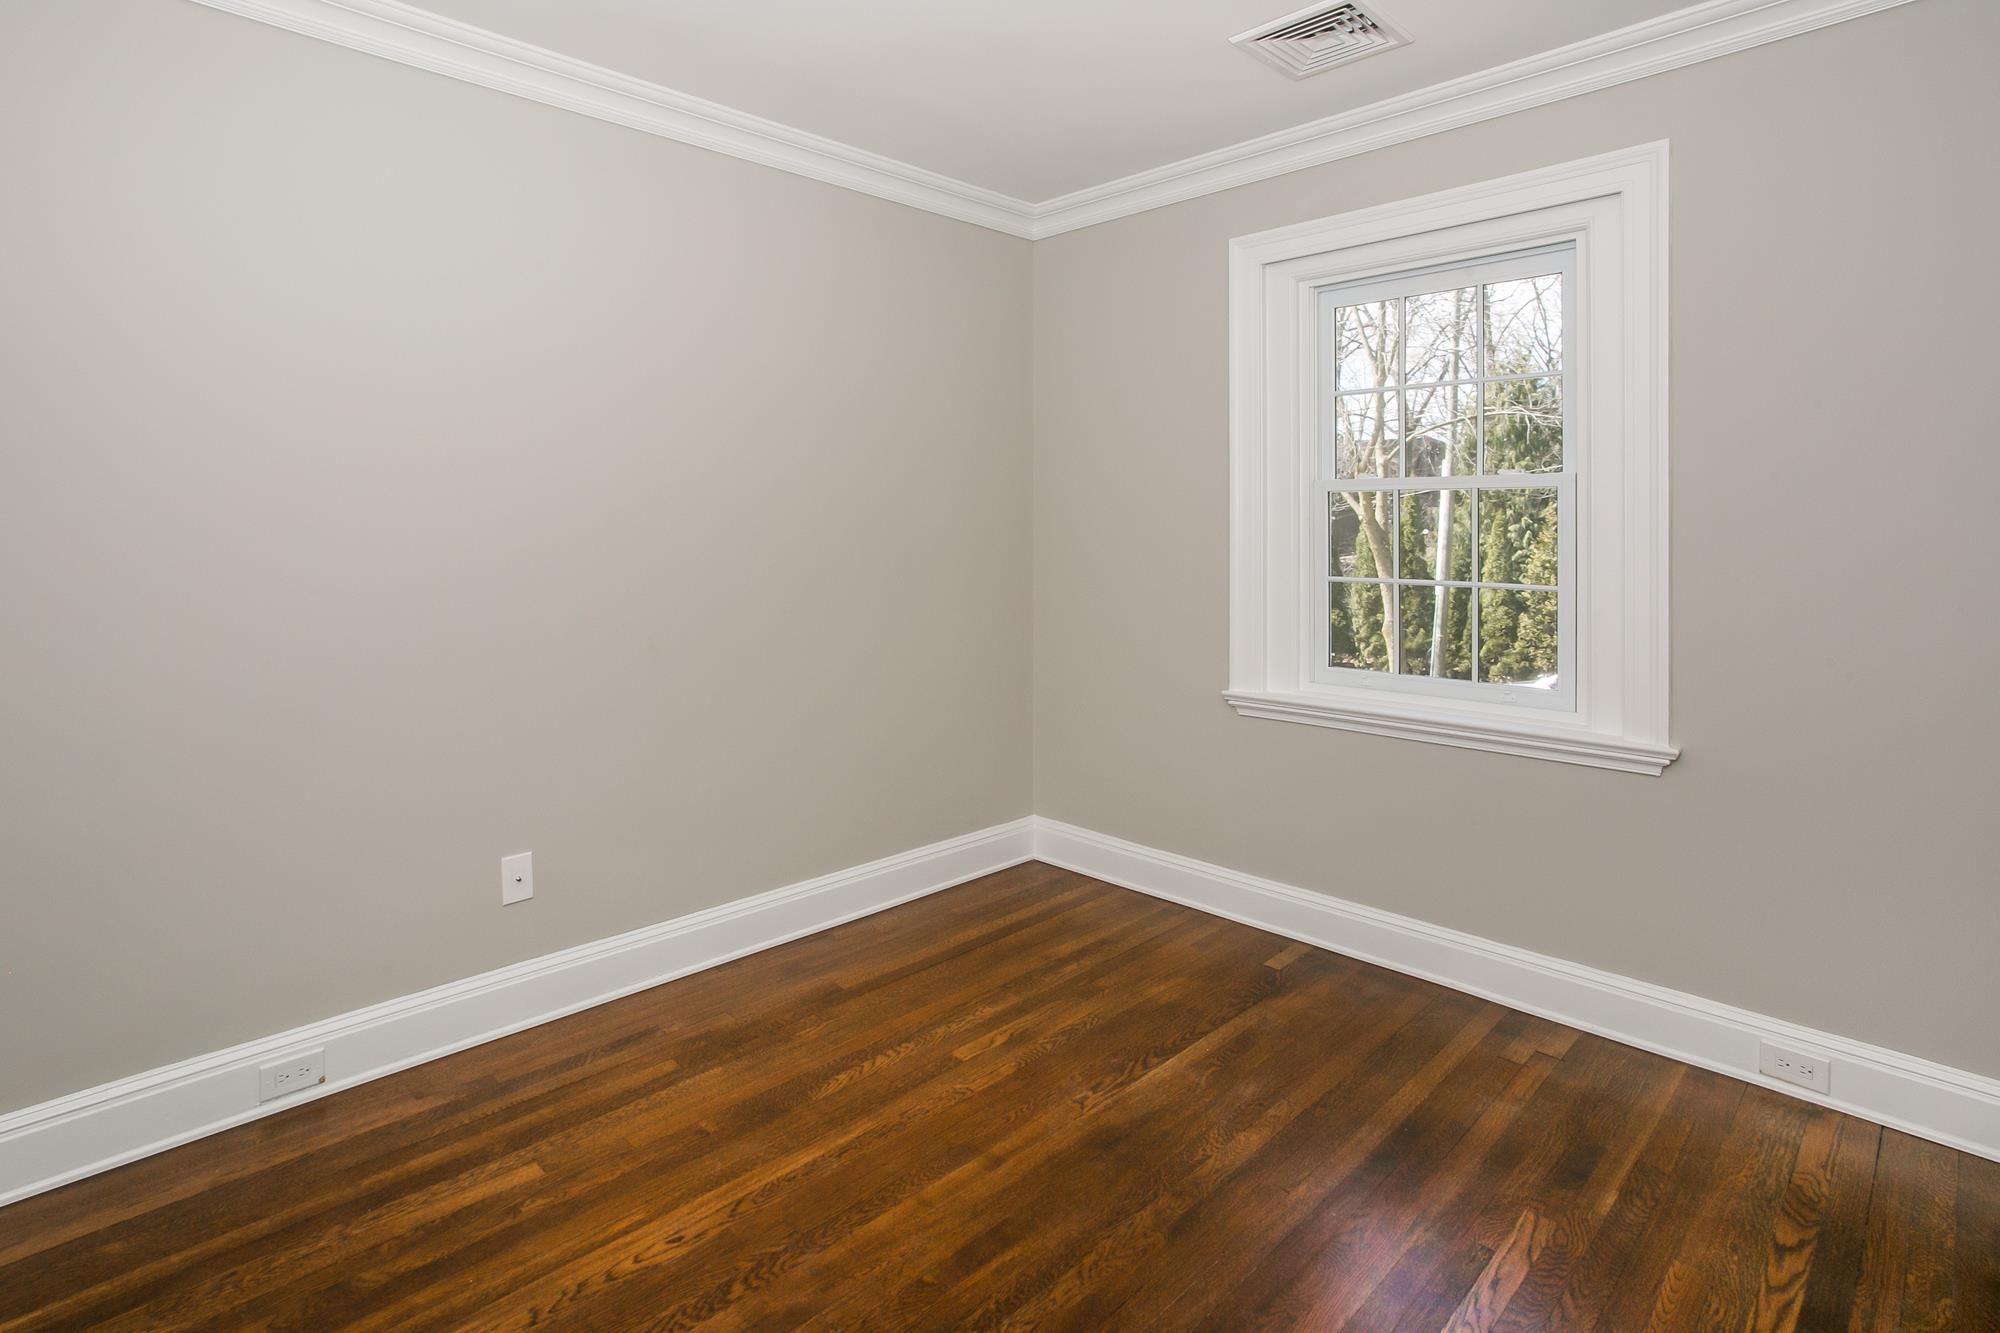 NEW RENOVATION: Classic 4-Bd. Brick Center-Hall Colonial on Grosvenor Avenue